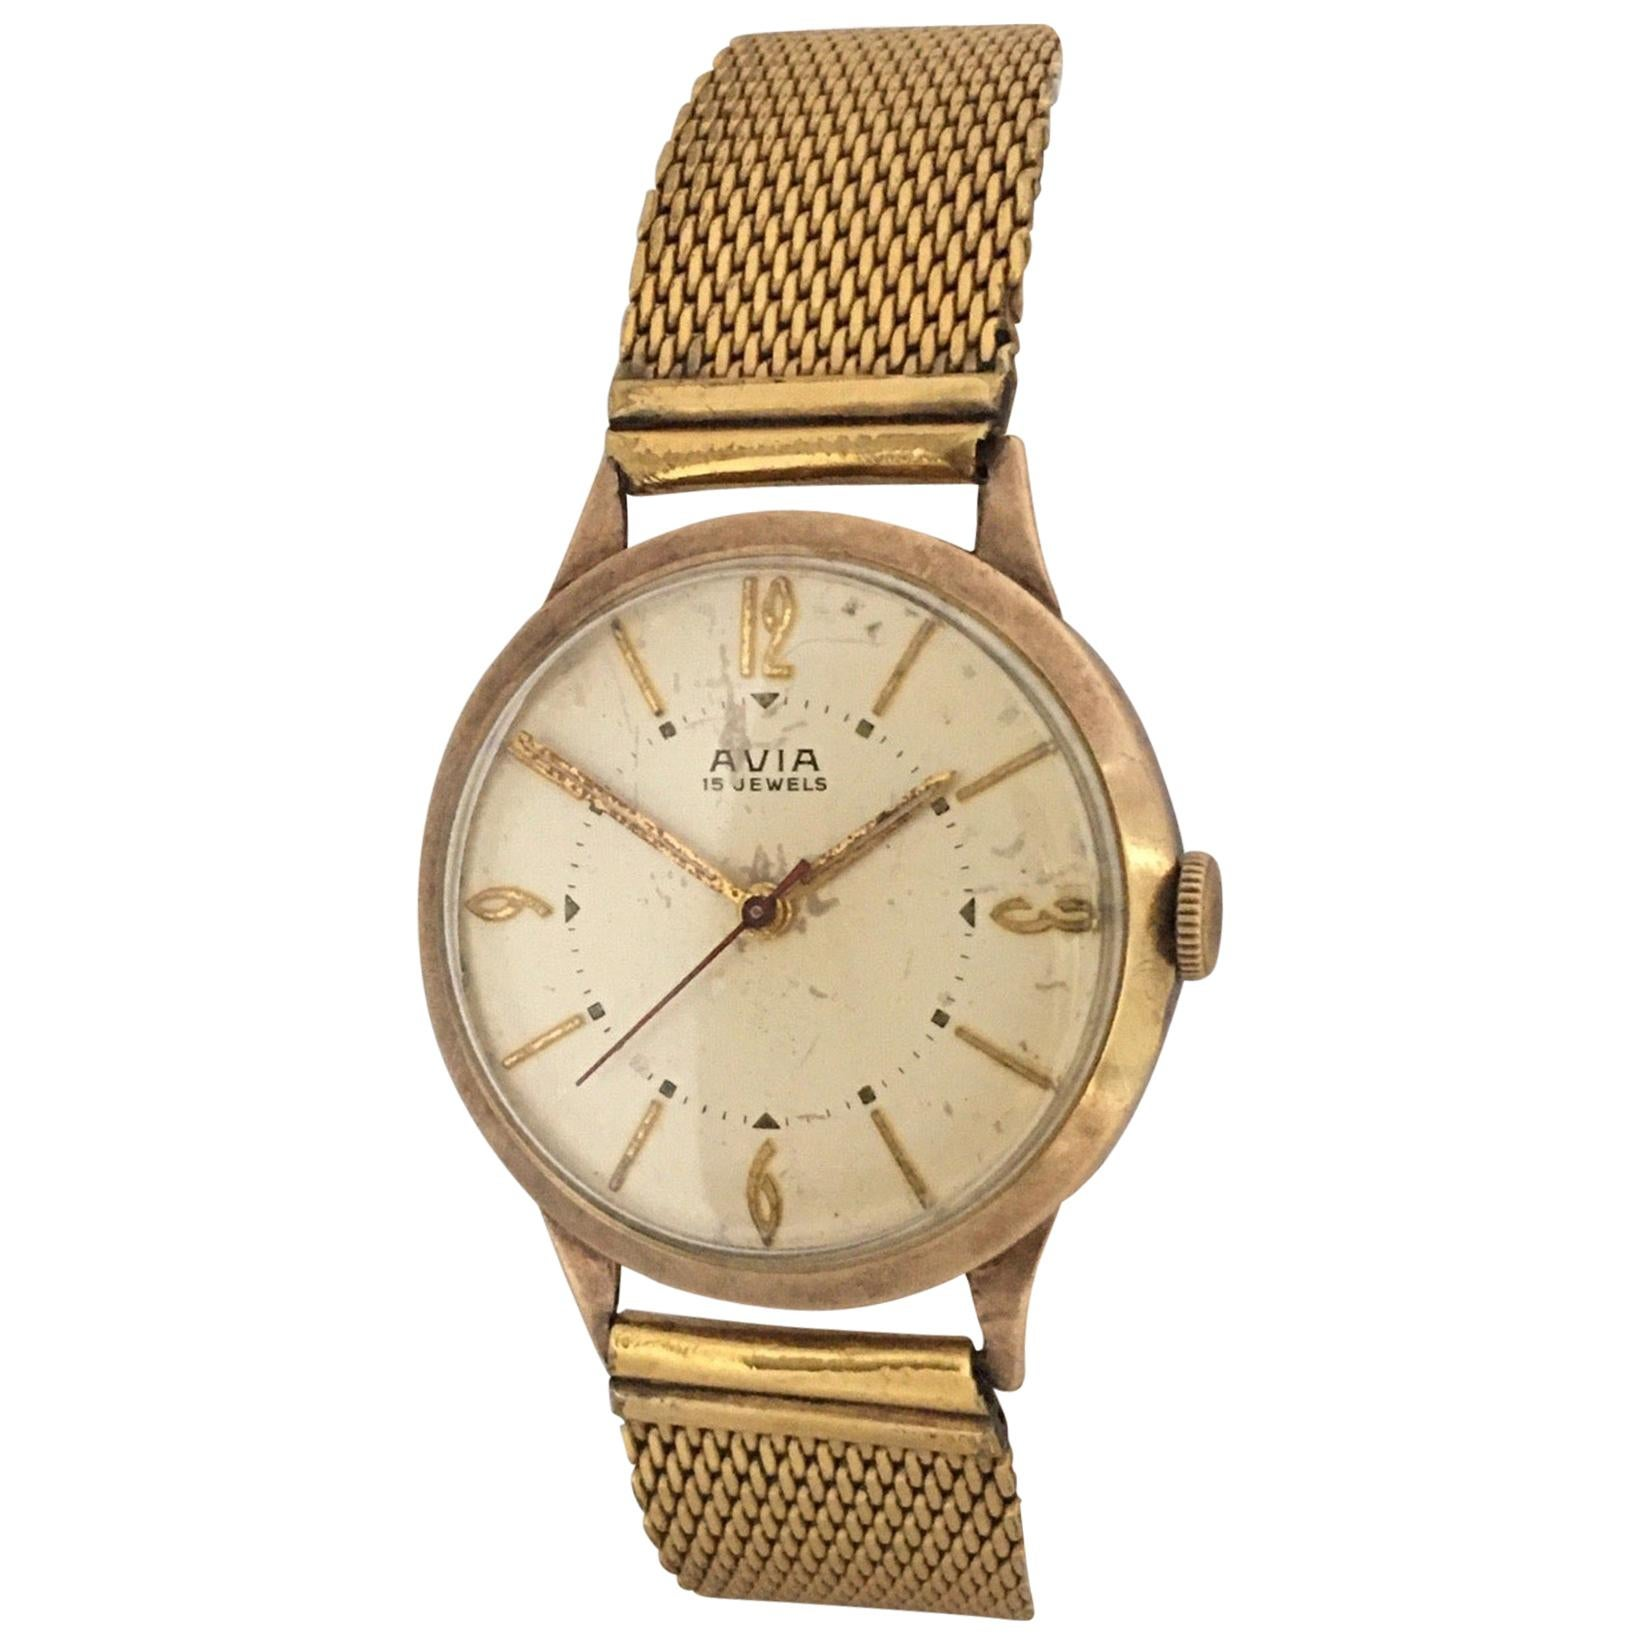 9 Karat Gold Vintage 1960s Mechanical Watch with Sweep Seconds